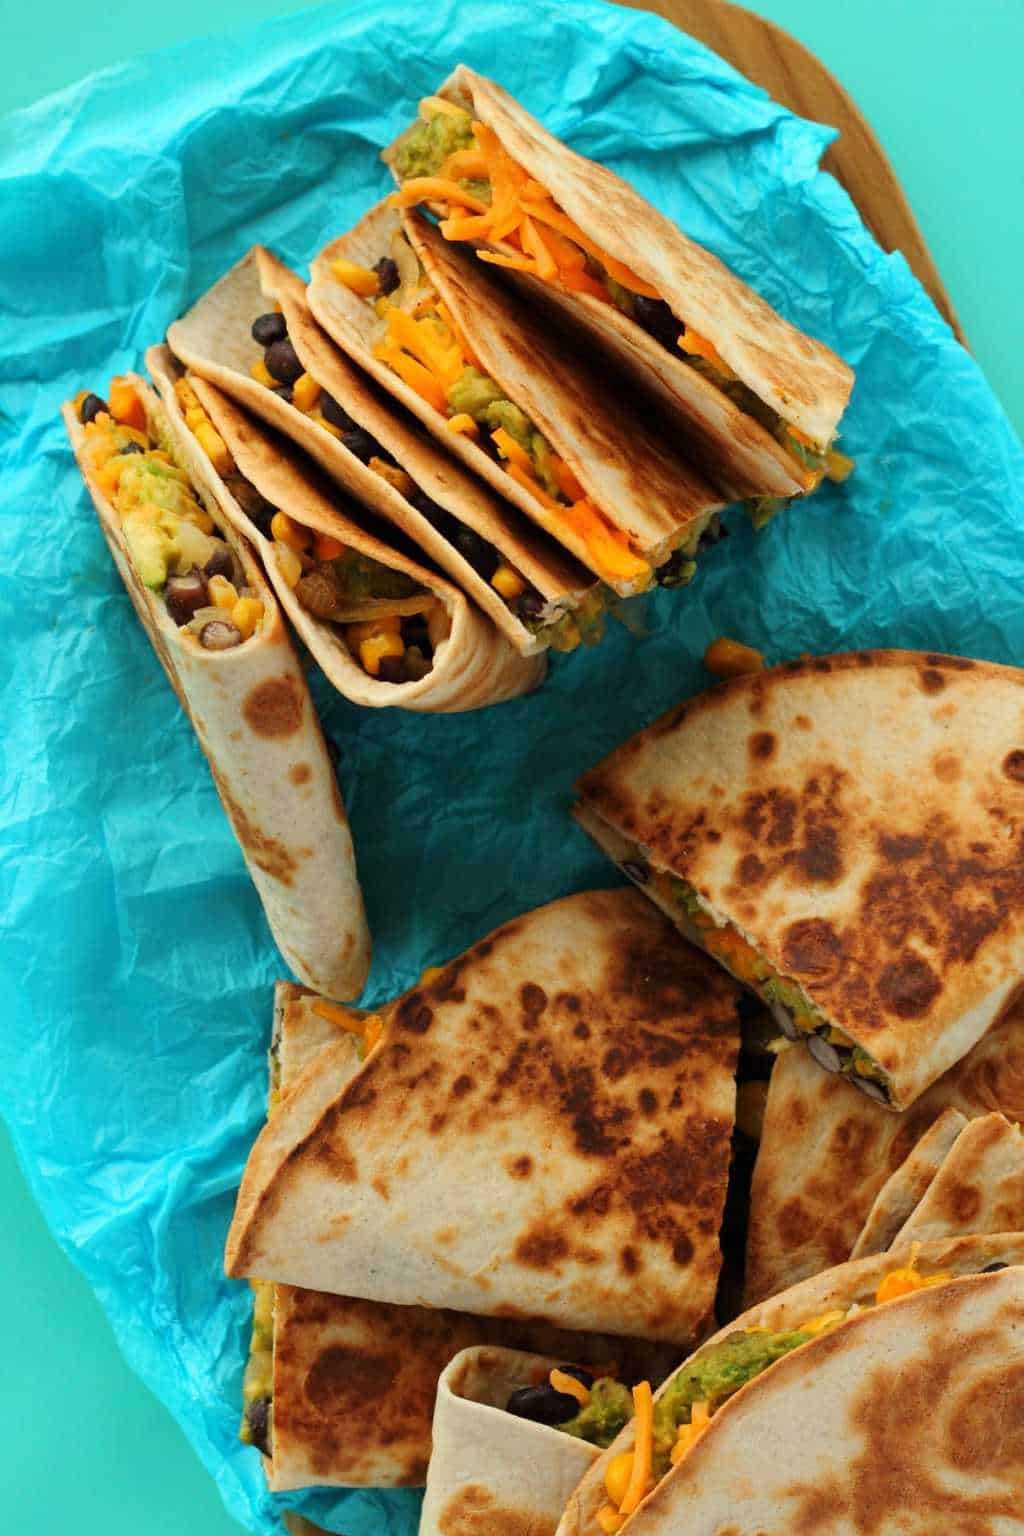 Vegan Quesadillas on blue paper.